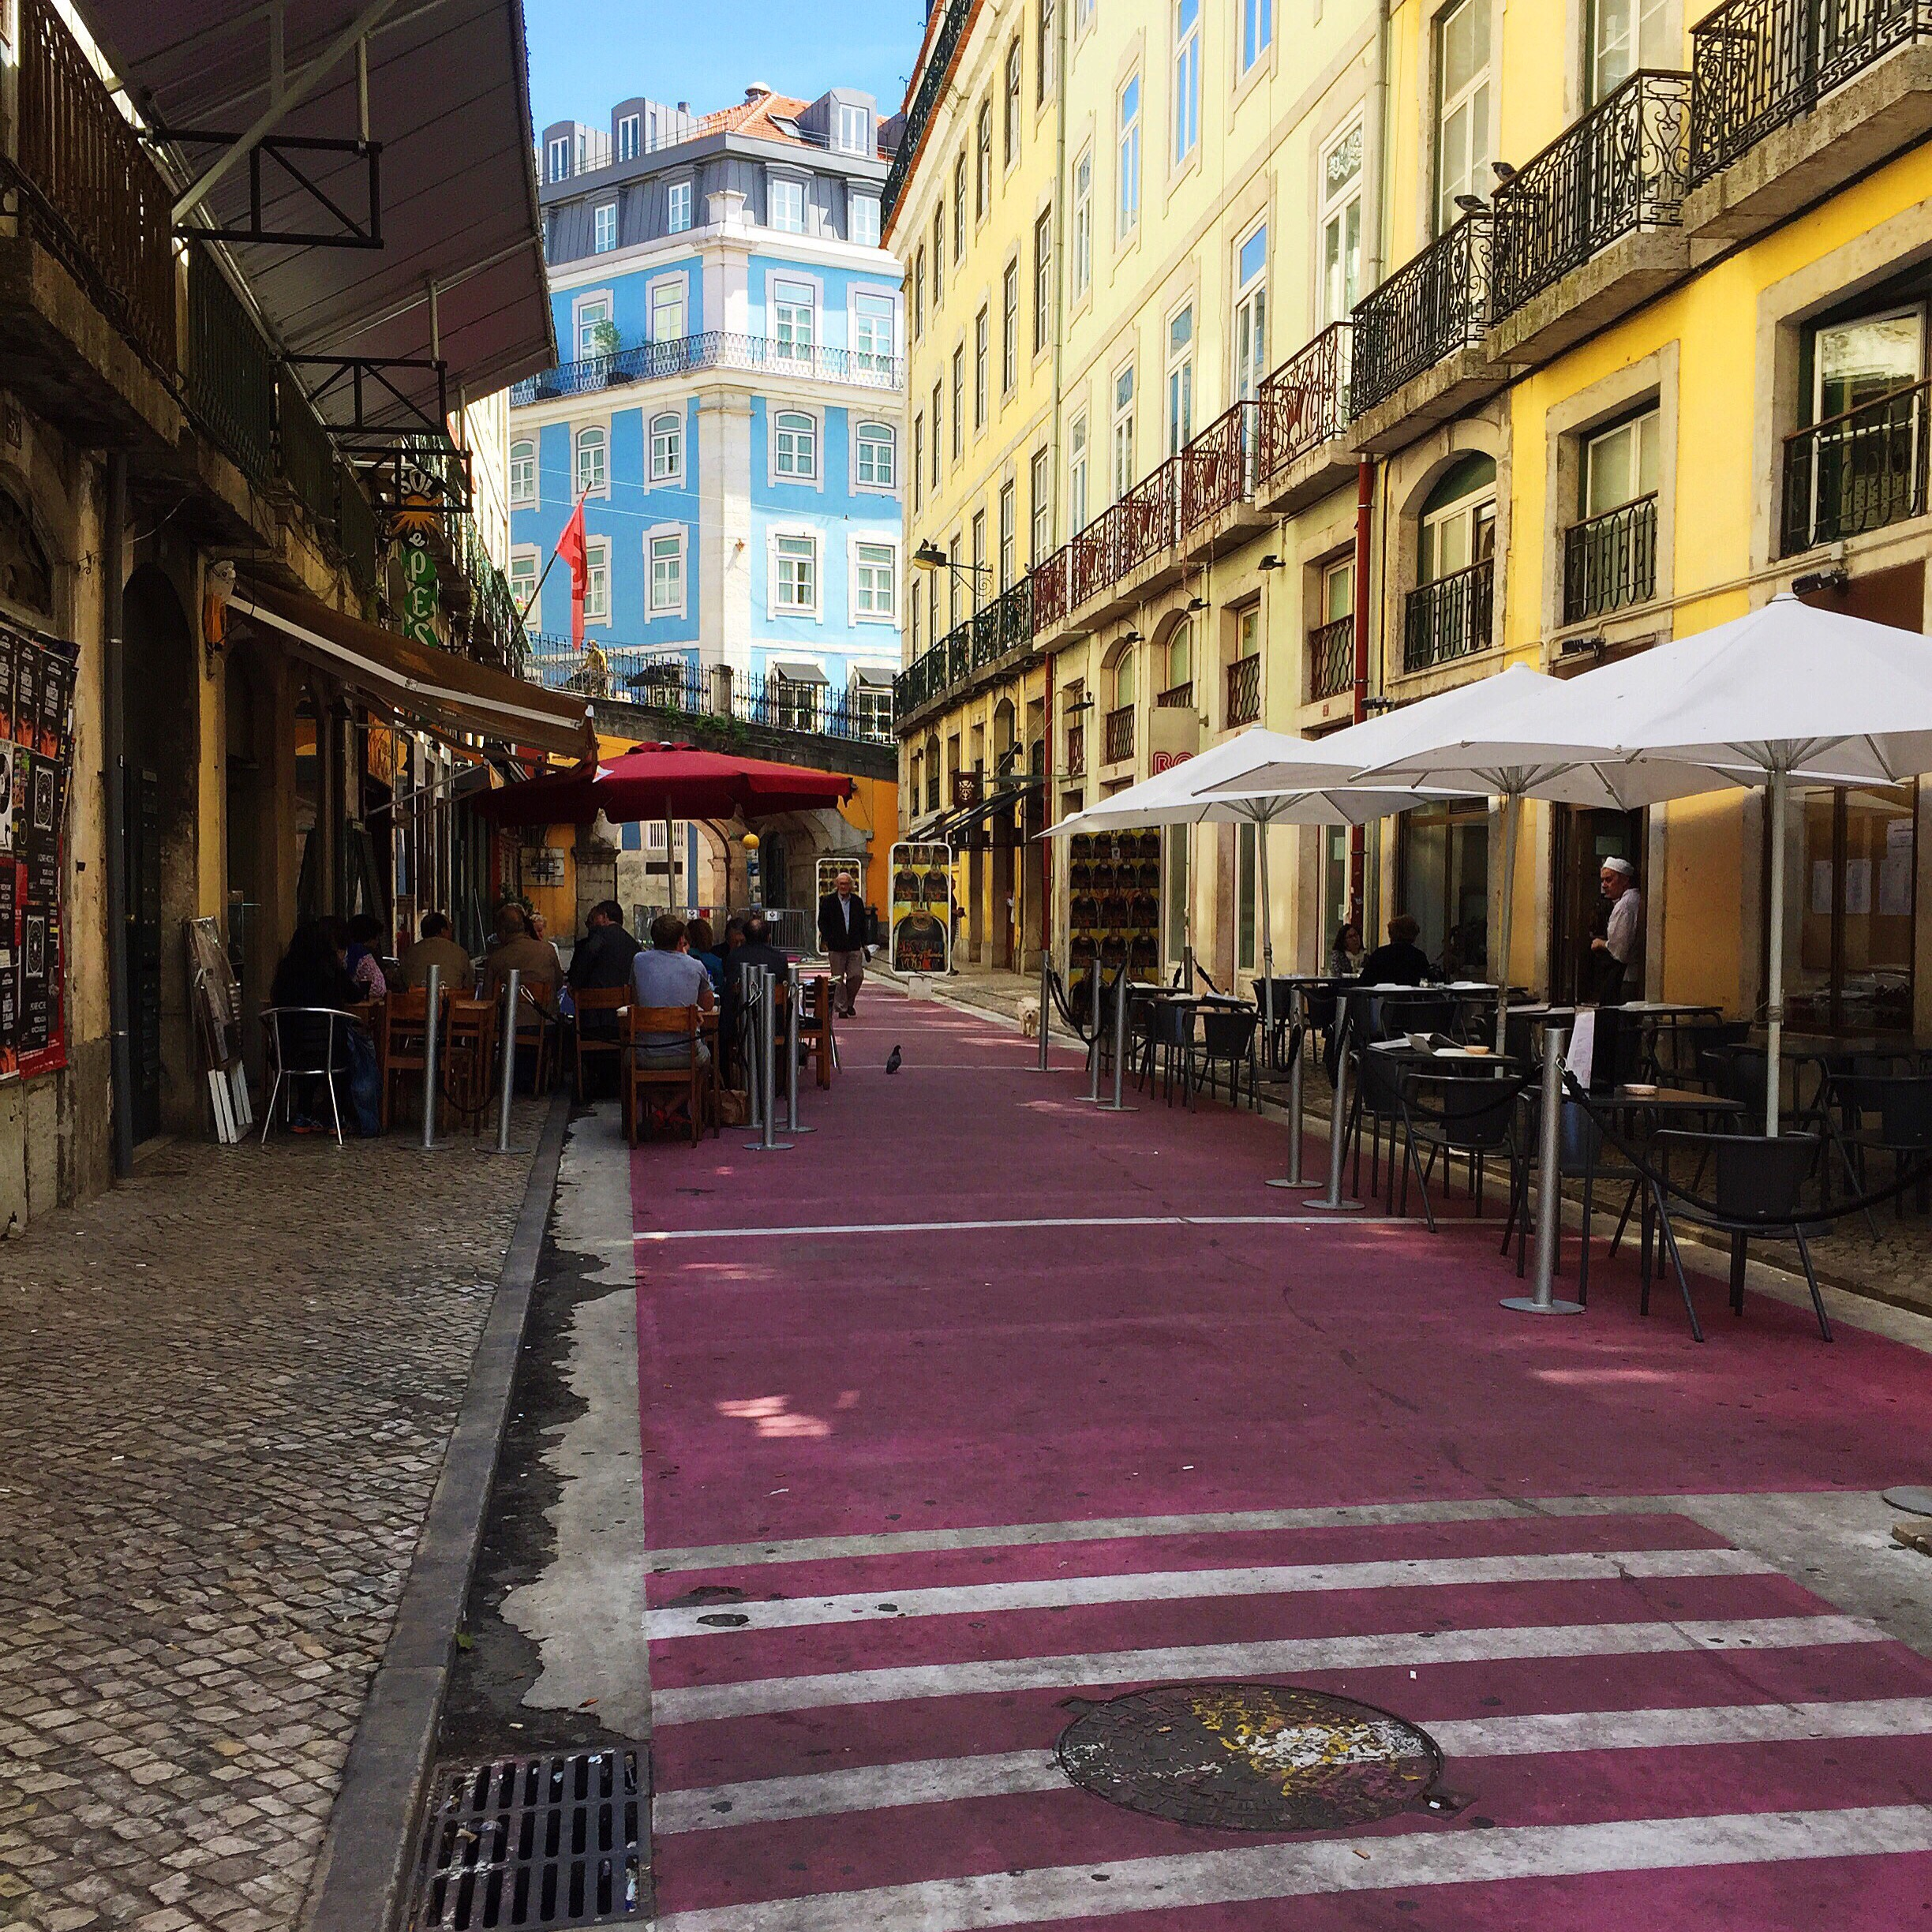 "Rua Nova Do Carvalho. Locals smiled when I tried to ask ""Where is 'The Pink Street'"" in Portuguese. Locals smiled pretty much all of the time, really."